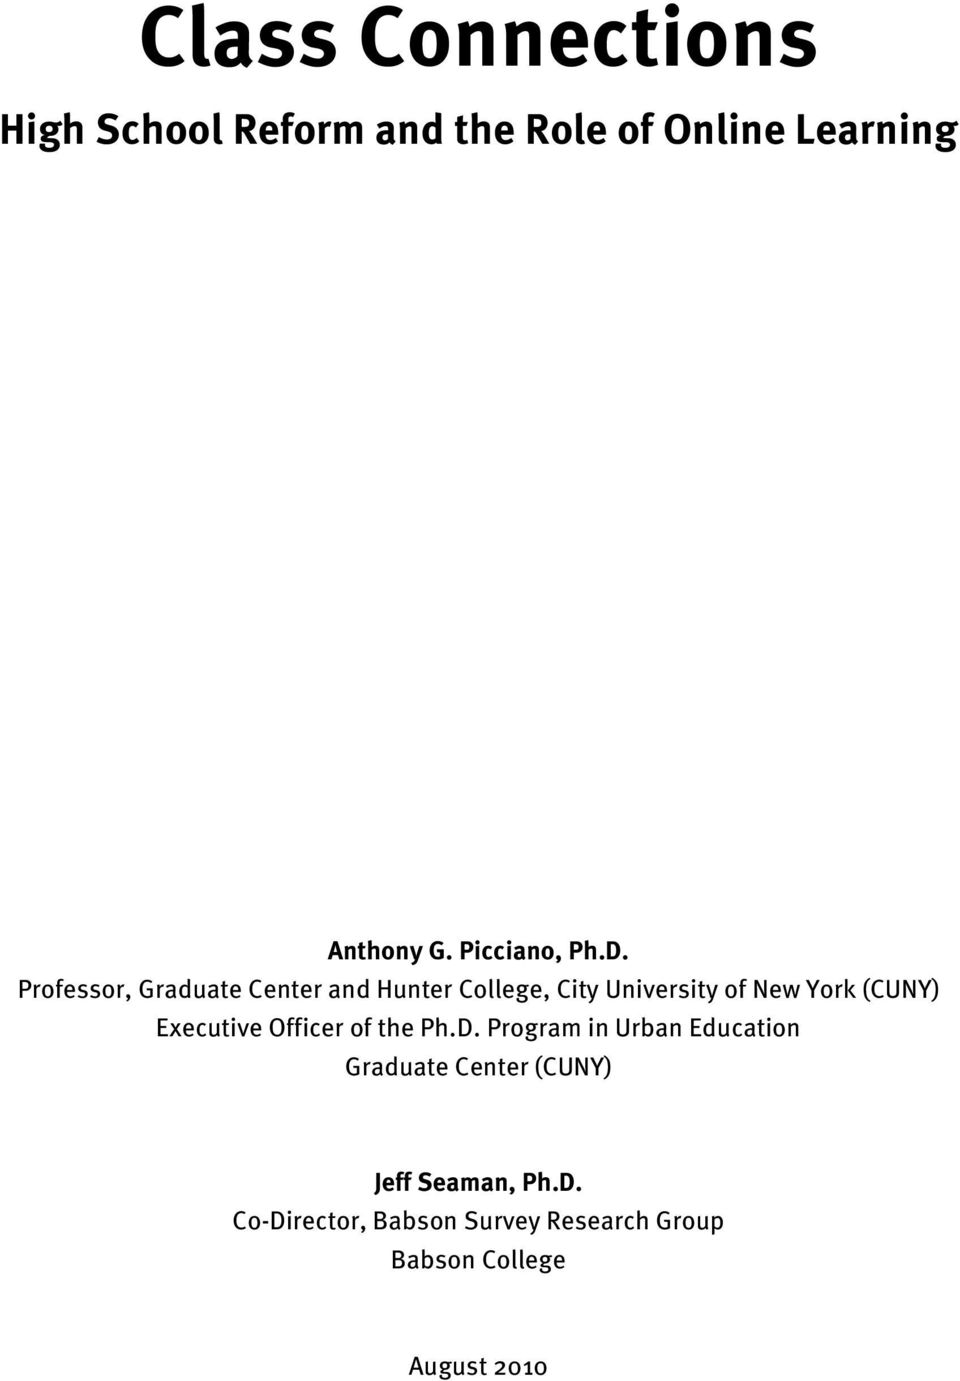 Professor, Graduate Center and Hunter College, City University of New York (CUNY)